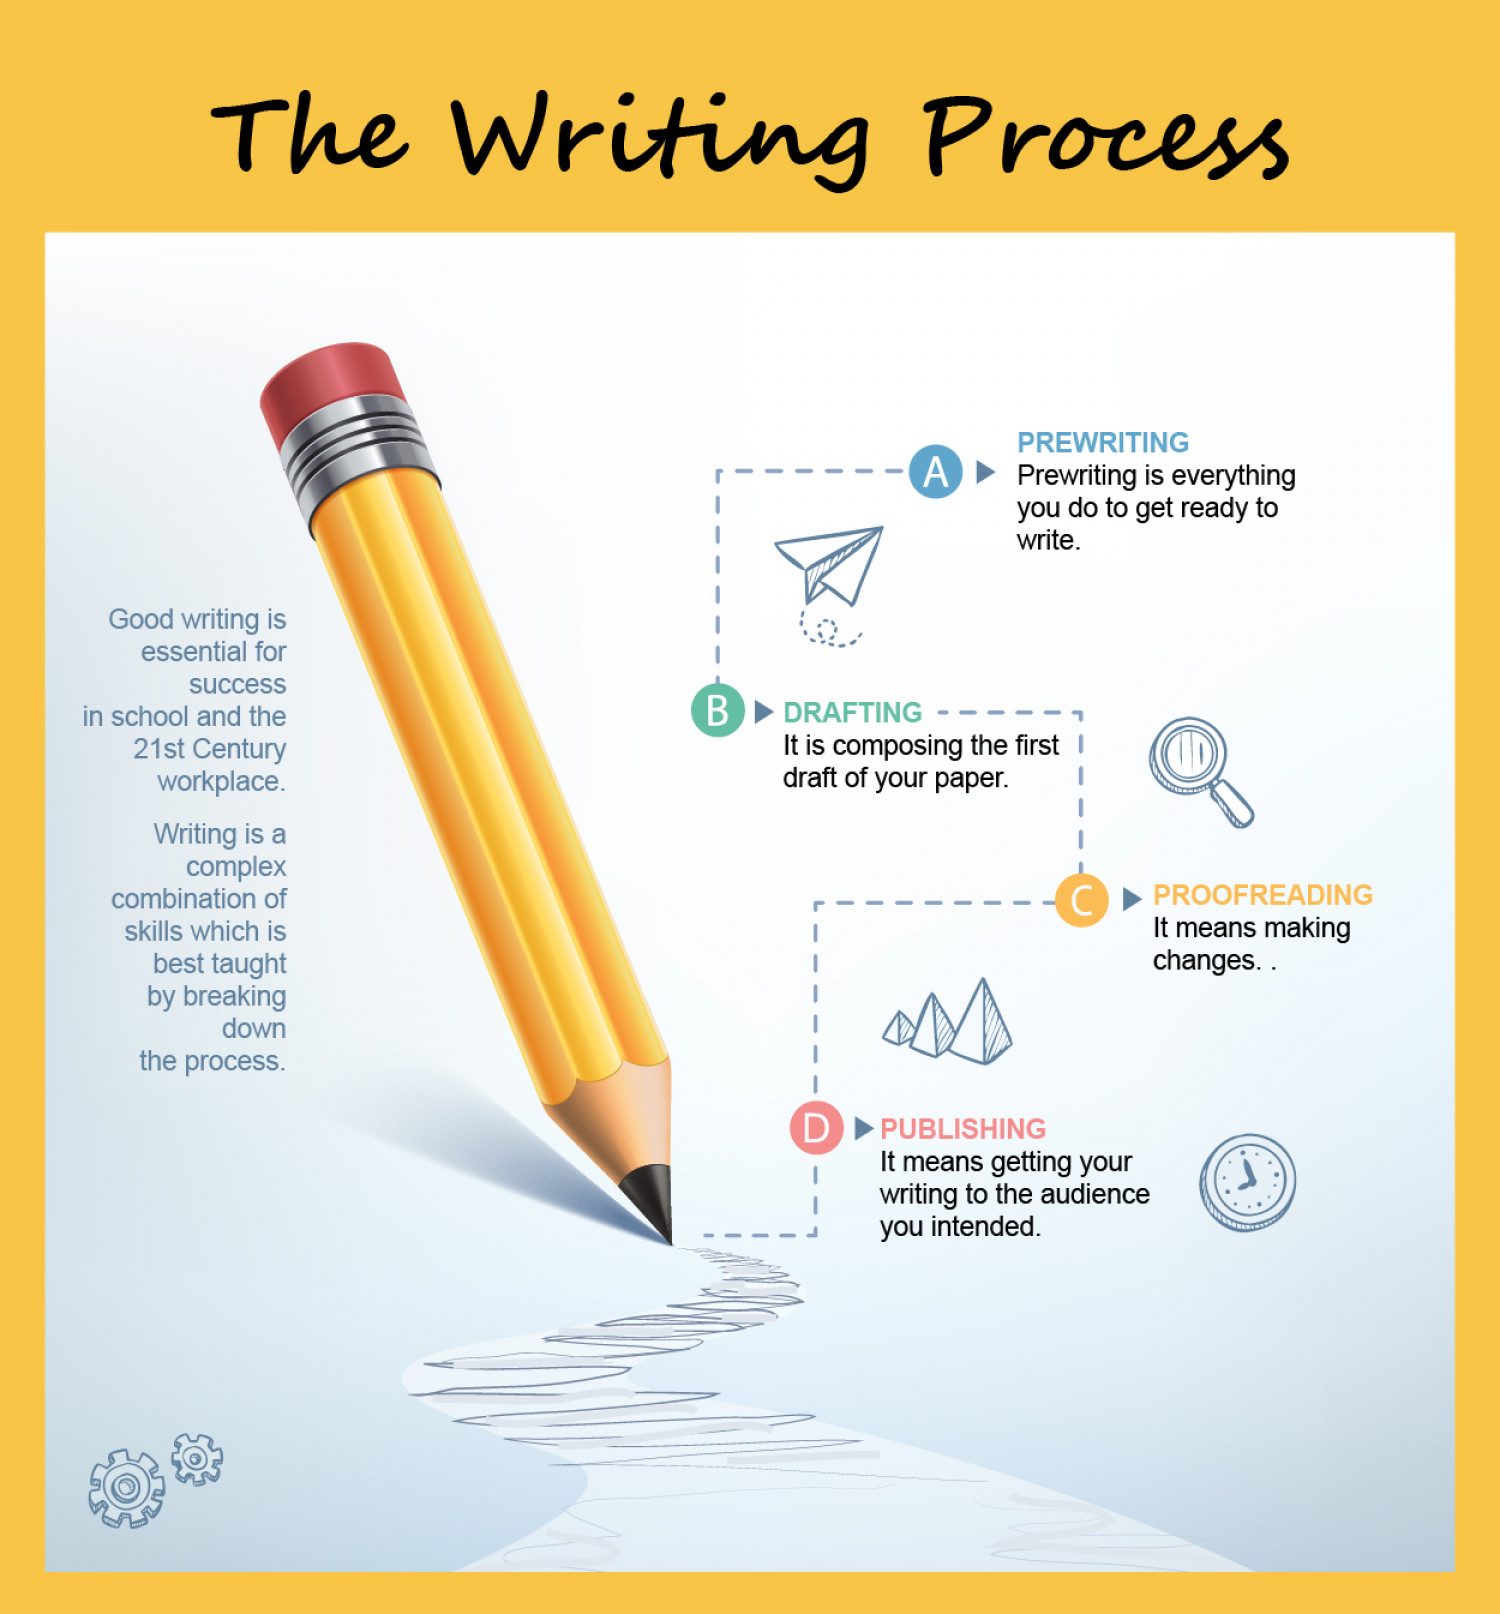 The Writing Process Steps To Writing Success Infographic